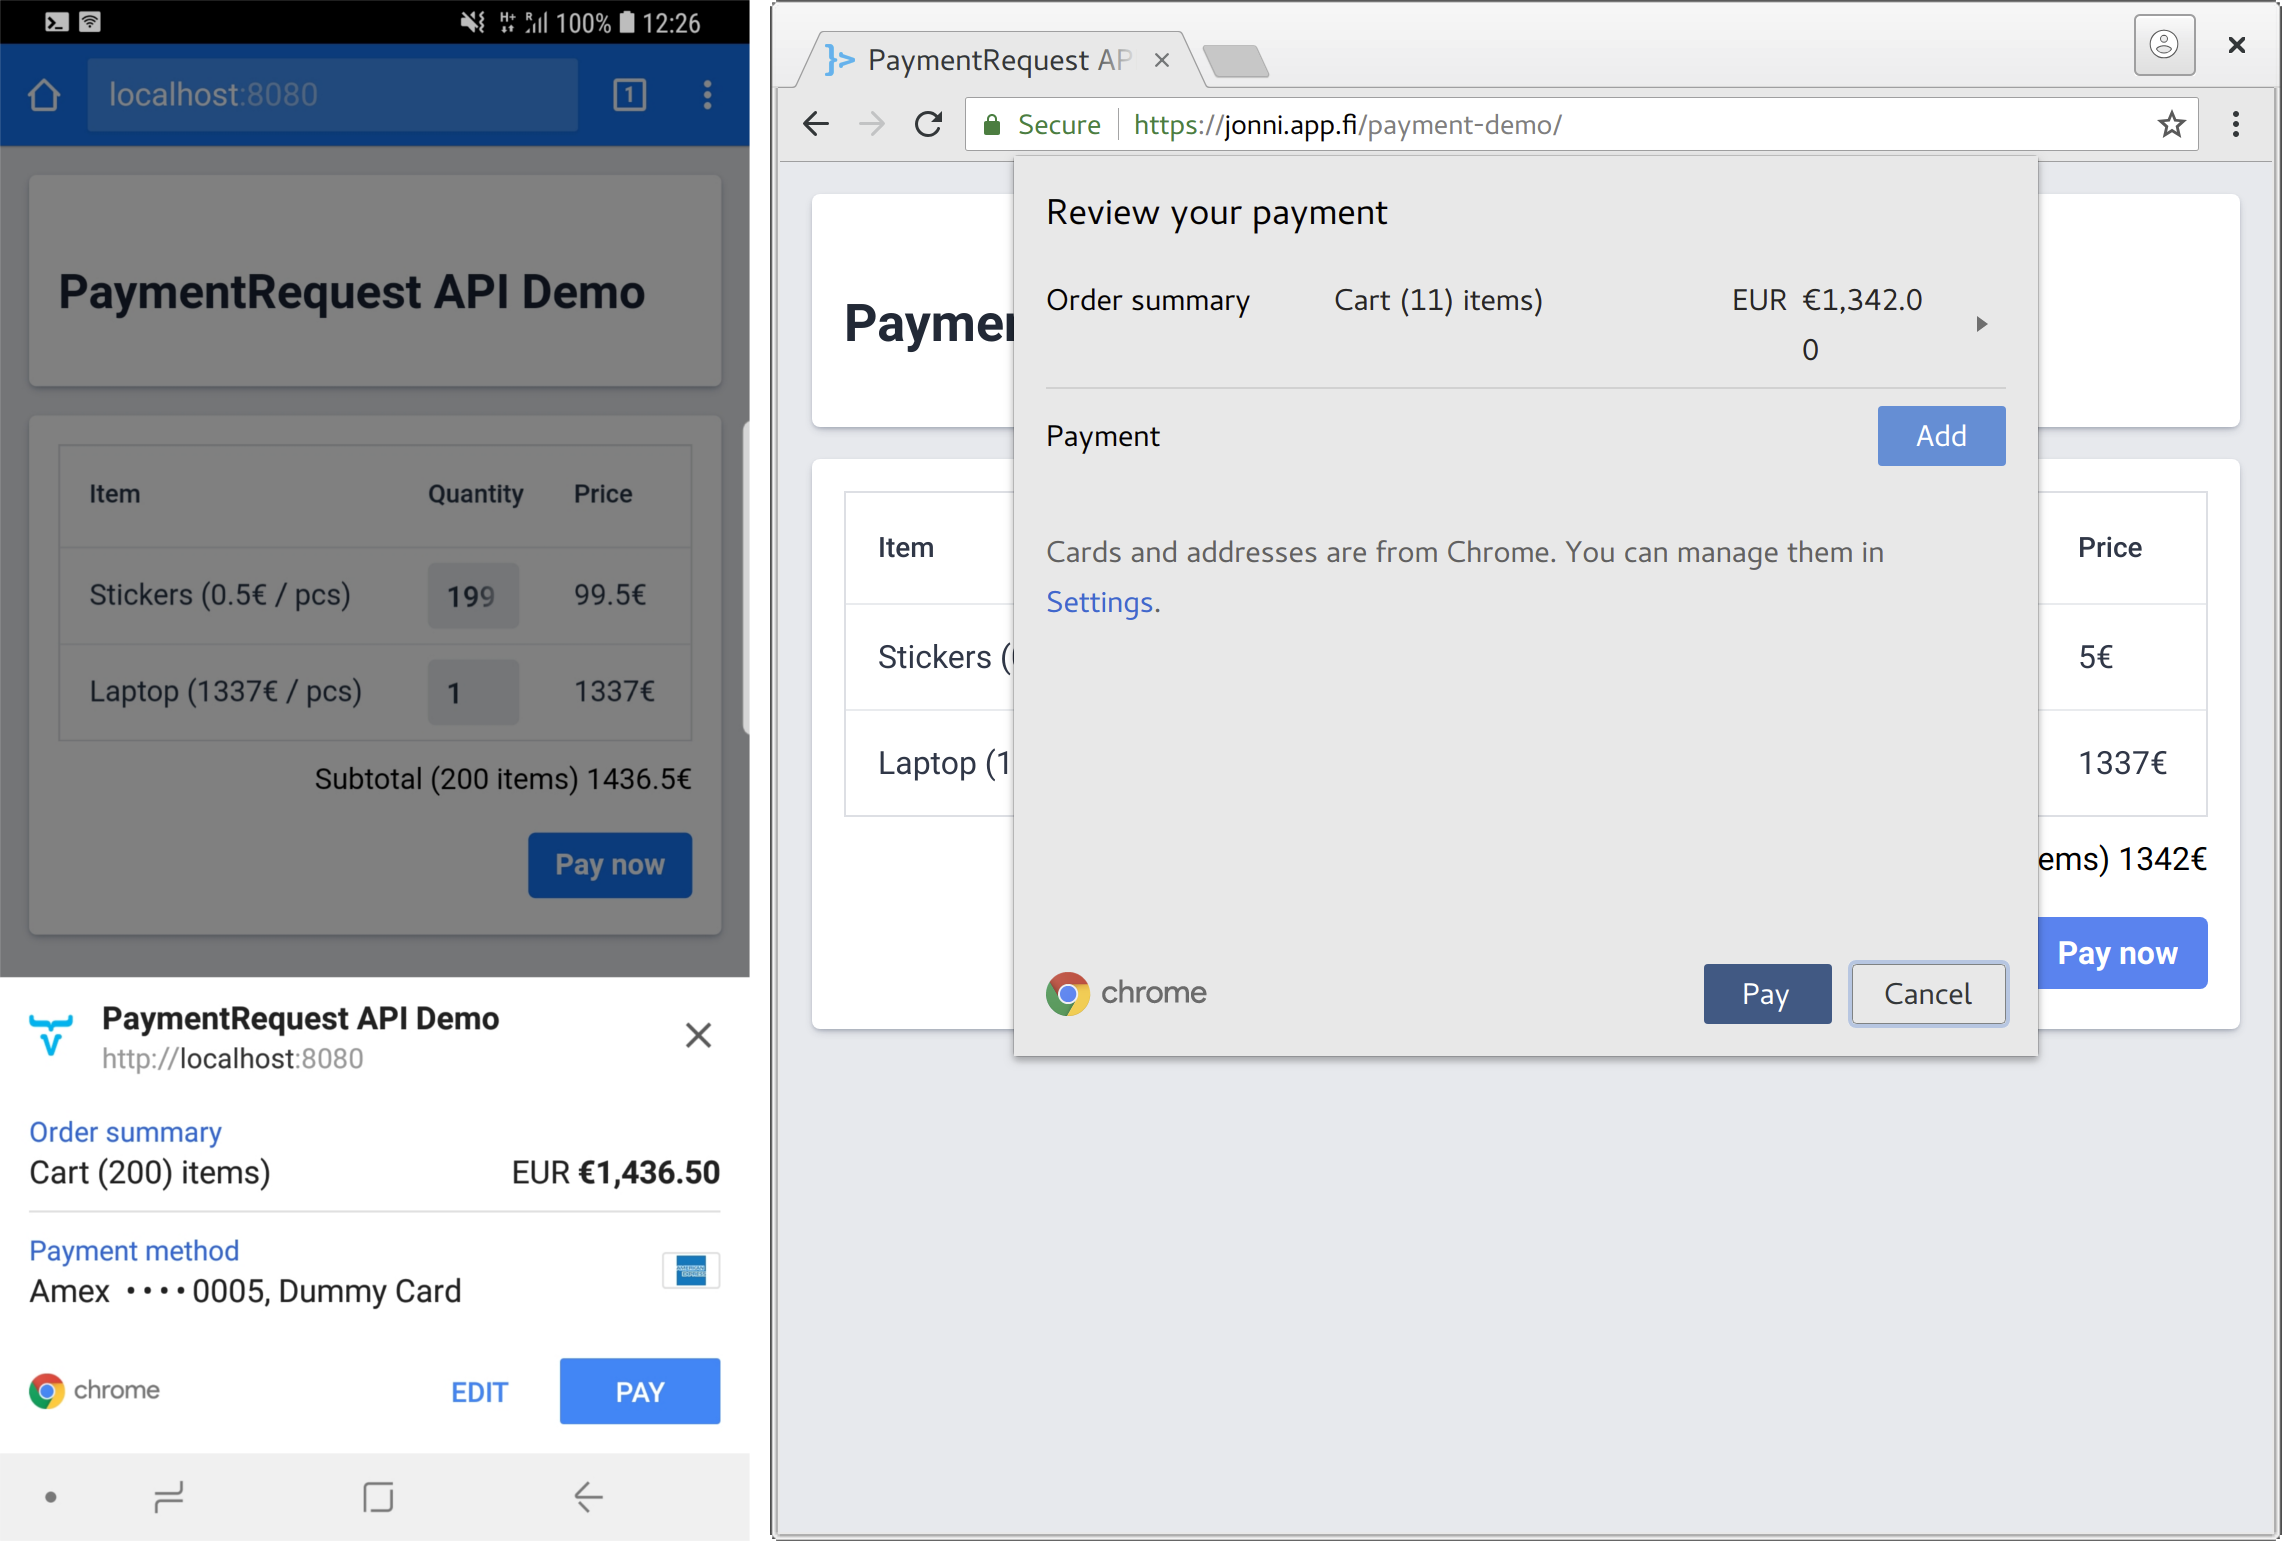 Payment Request in just opened state